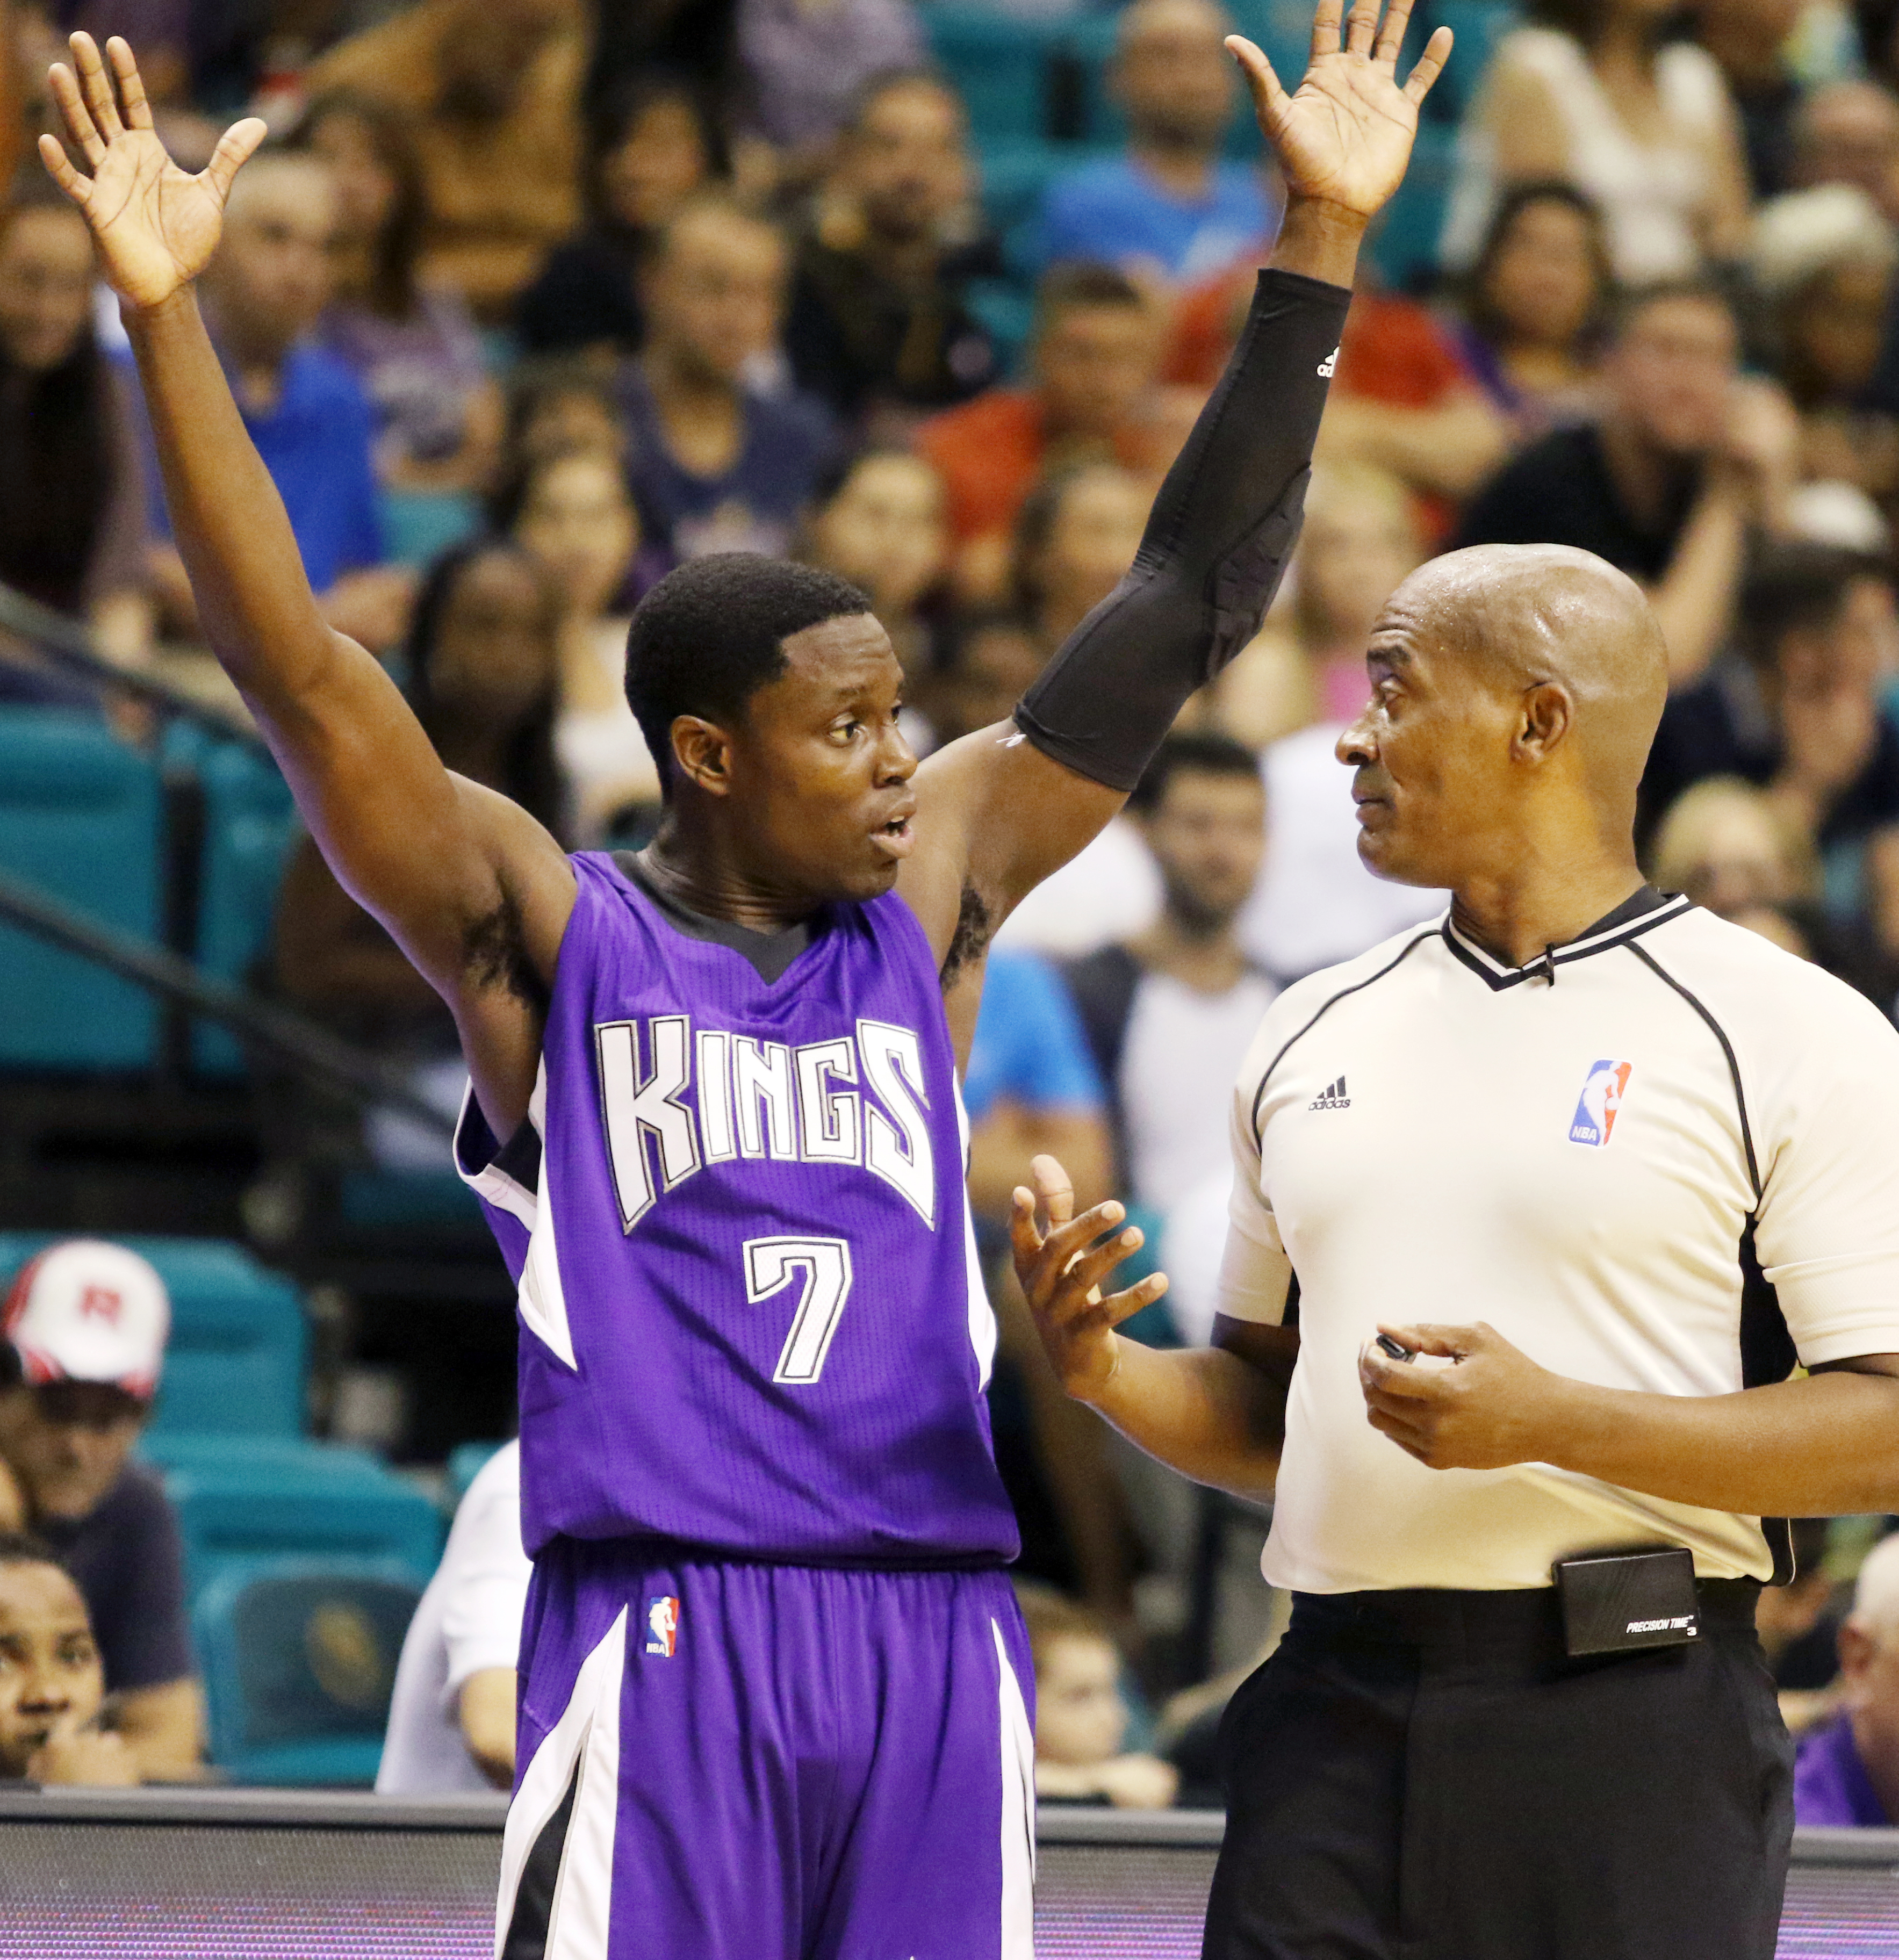 Sacramento Kings' Darren Collison puts his hand up while talking to a referee in the second half of an NBA preseason game against the Los Angeles Lakers, Tuesday, Oct. 13, 2015, in Las Vegas. The Sacramento Kings won 107-100. (AP Photo/Ronda Churchill)